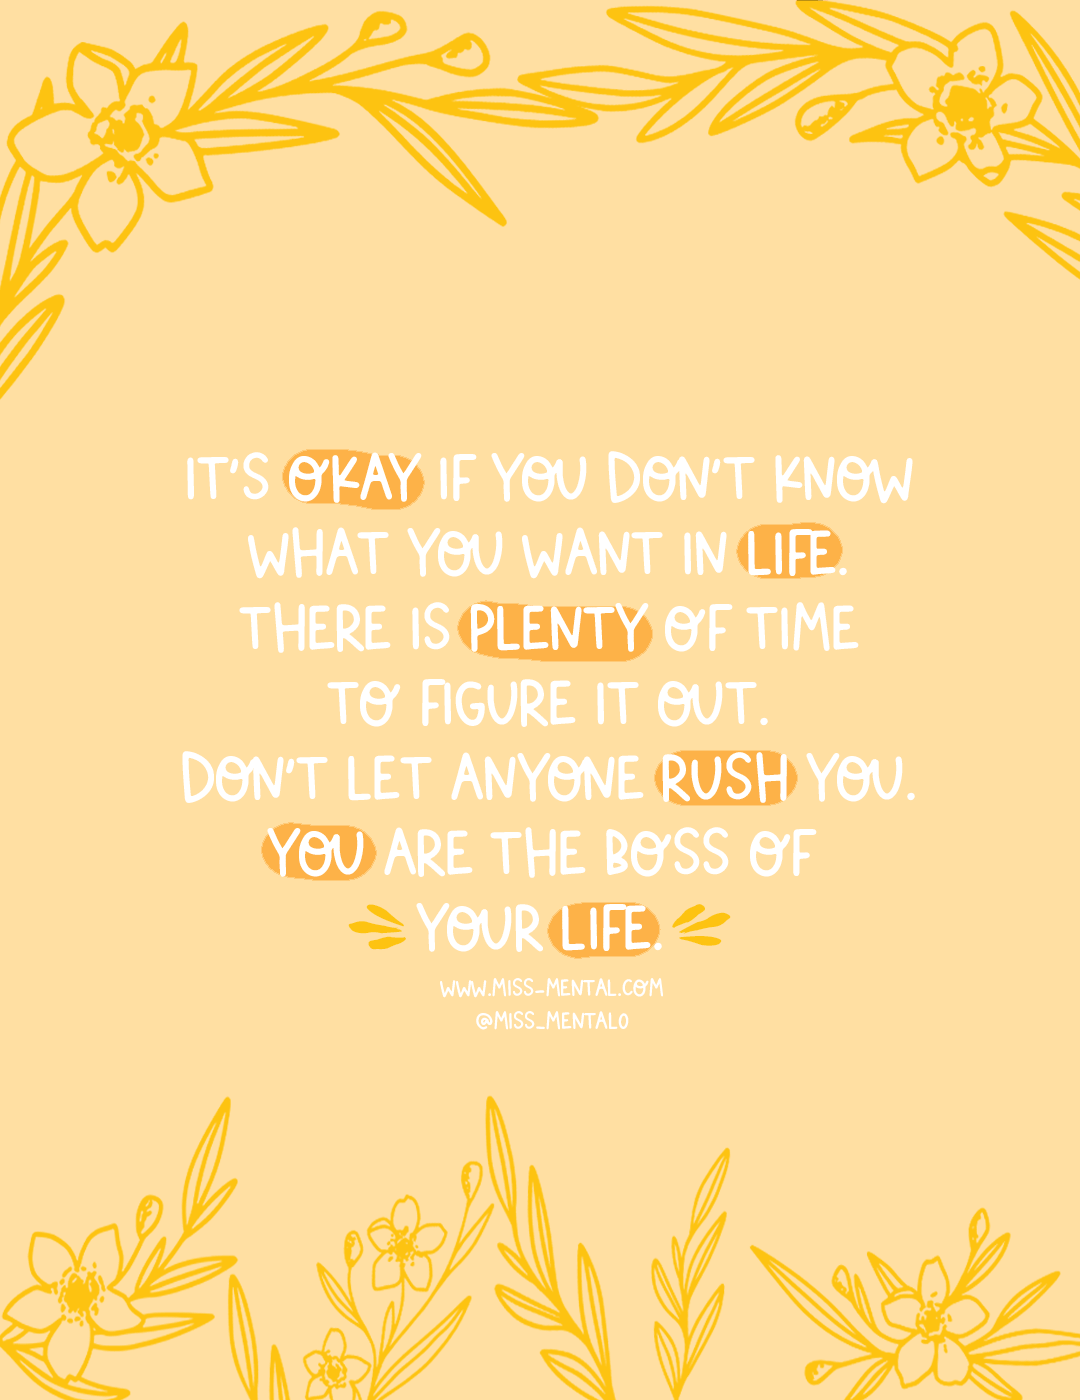 It's okay if you don't know what you want in life. there is plenty of time to figure it out. Don't let anyone rush you. you are the boss of your life motivational quote. illustration   artwork   flowers   Yellow pastel   mental health   positive vibes   encouragement   Good vibes #positivity